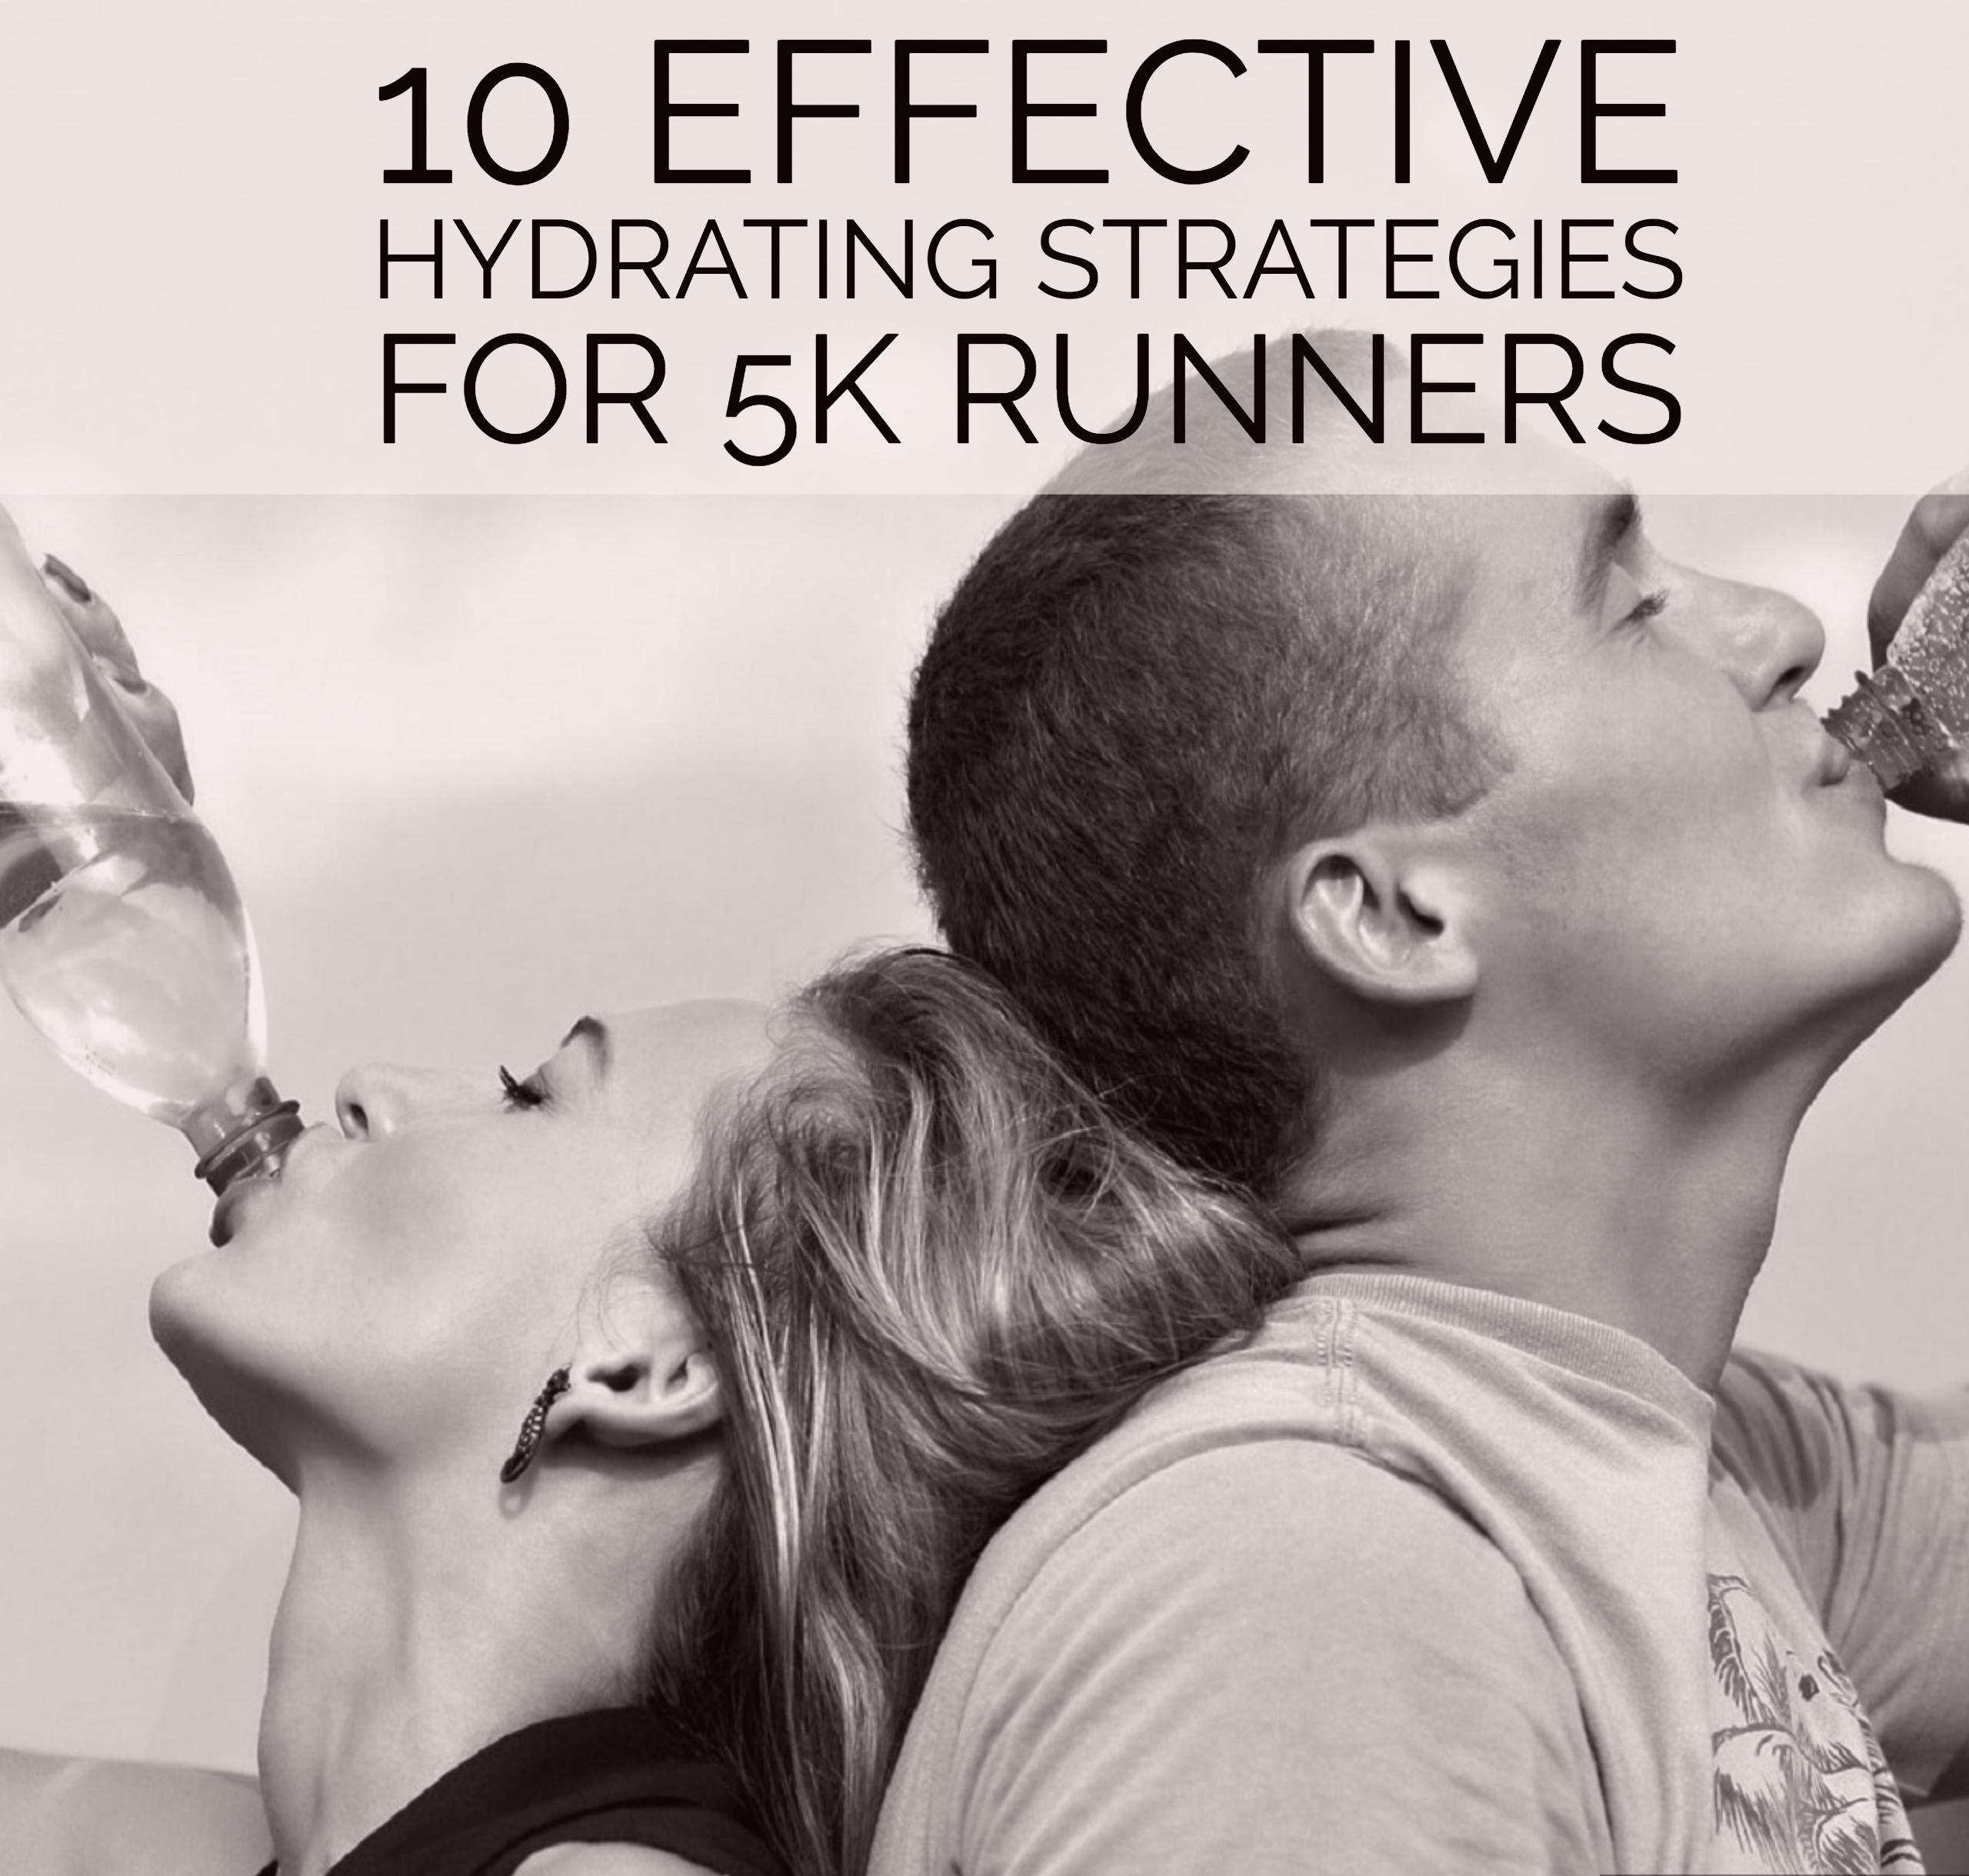 10 Effective Hydrating Strategies for 5K Runners